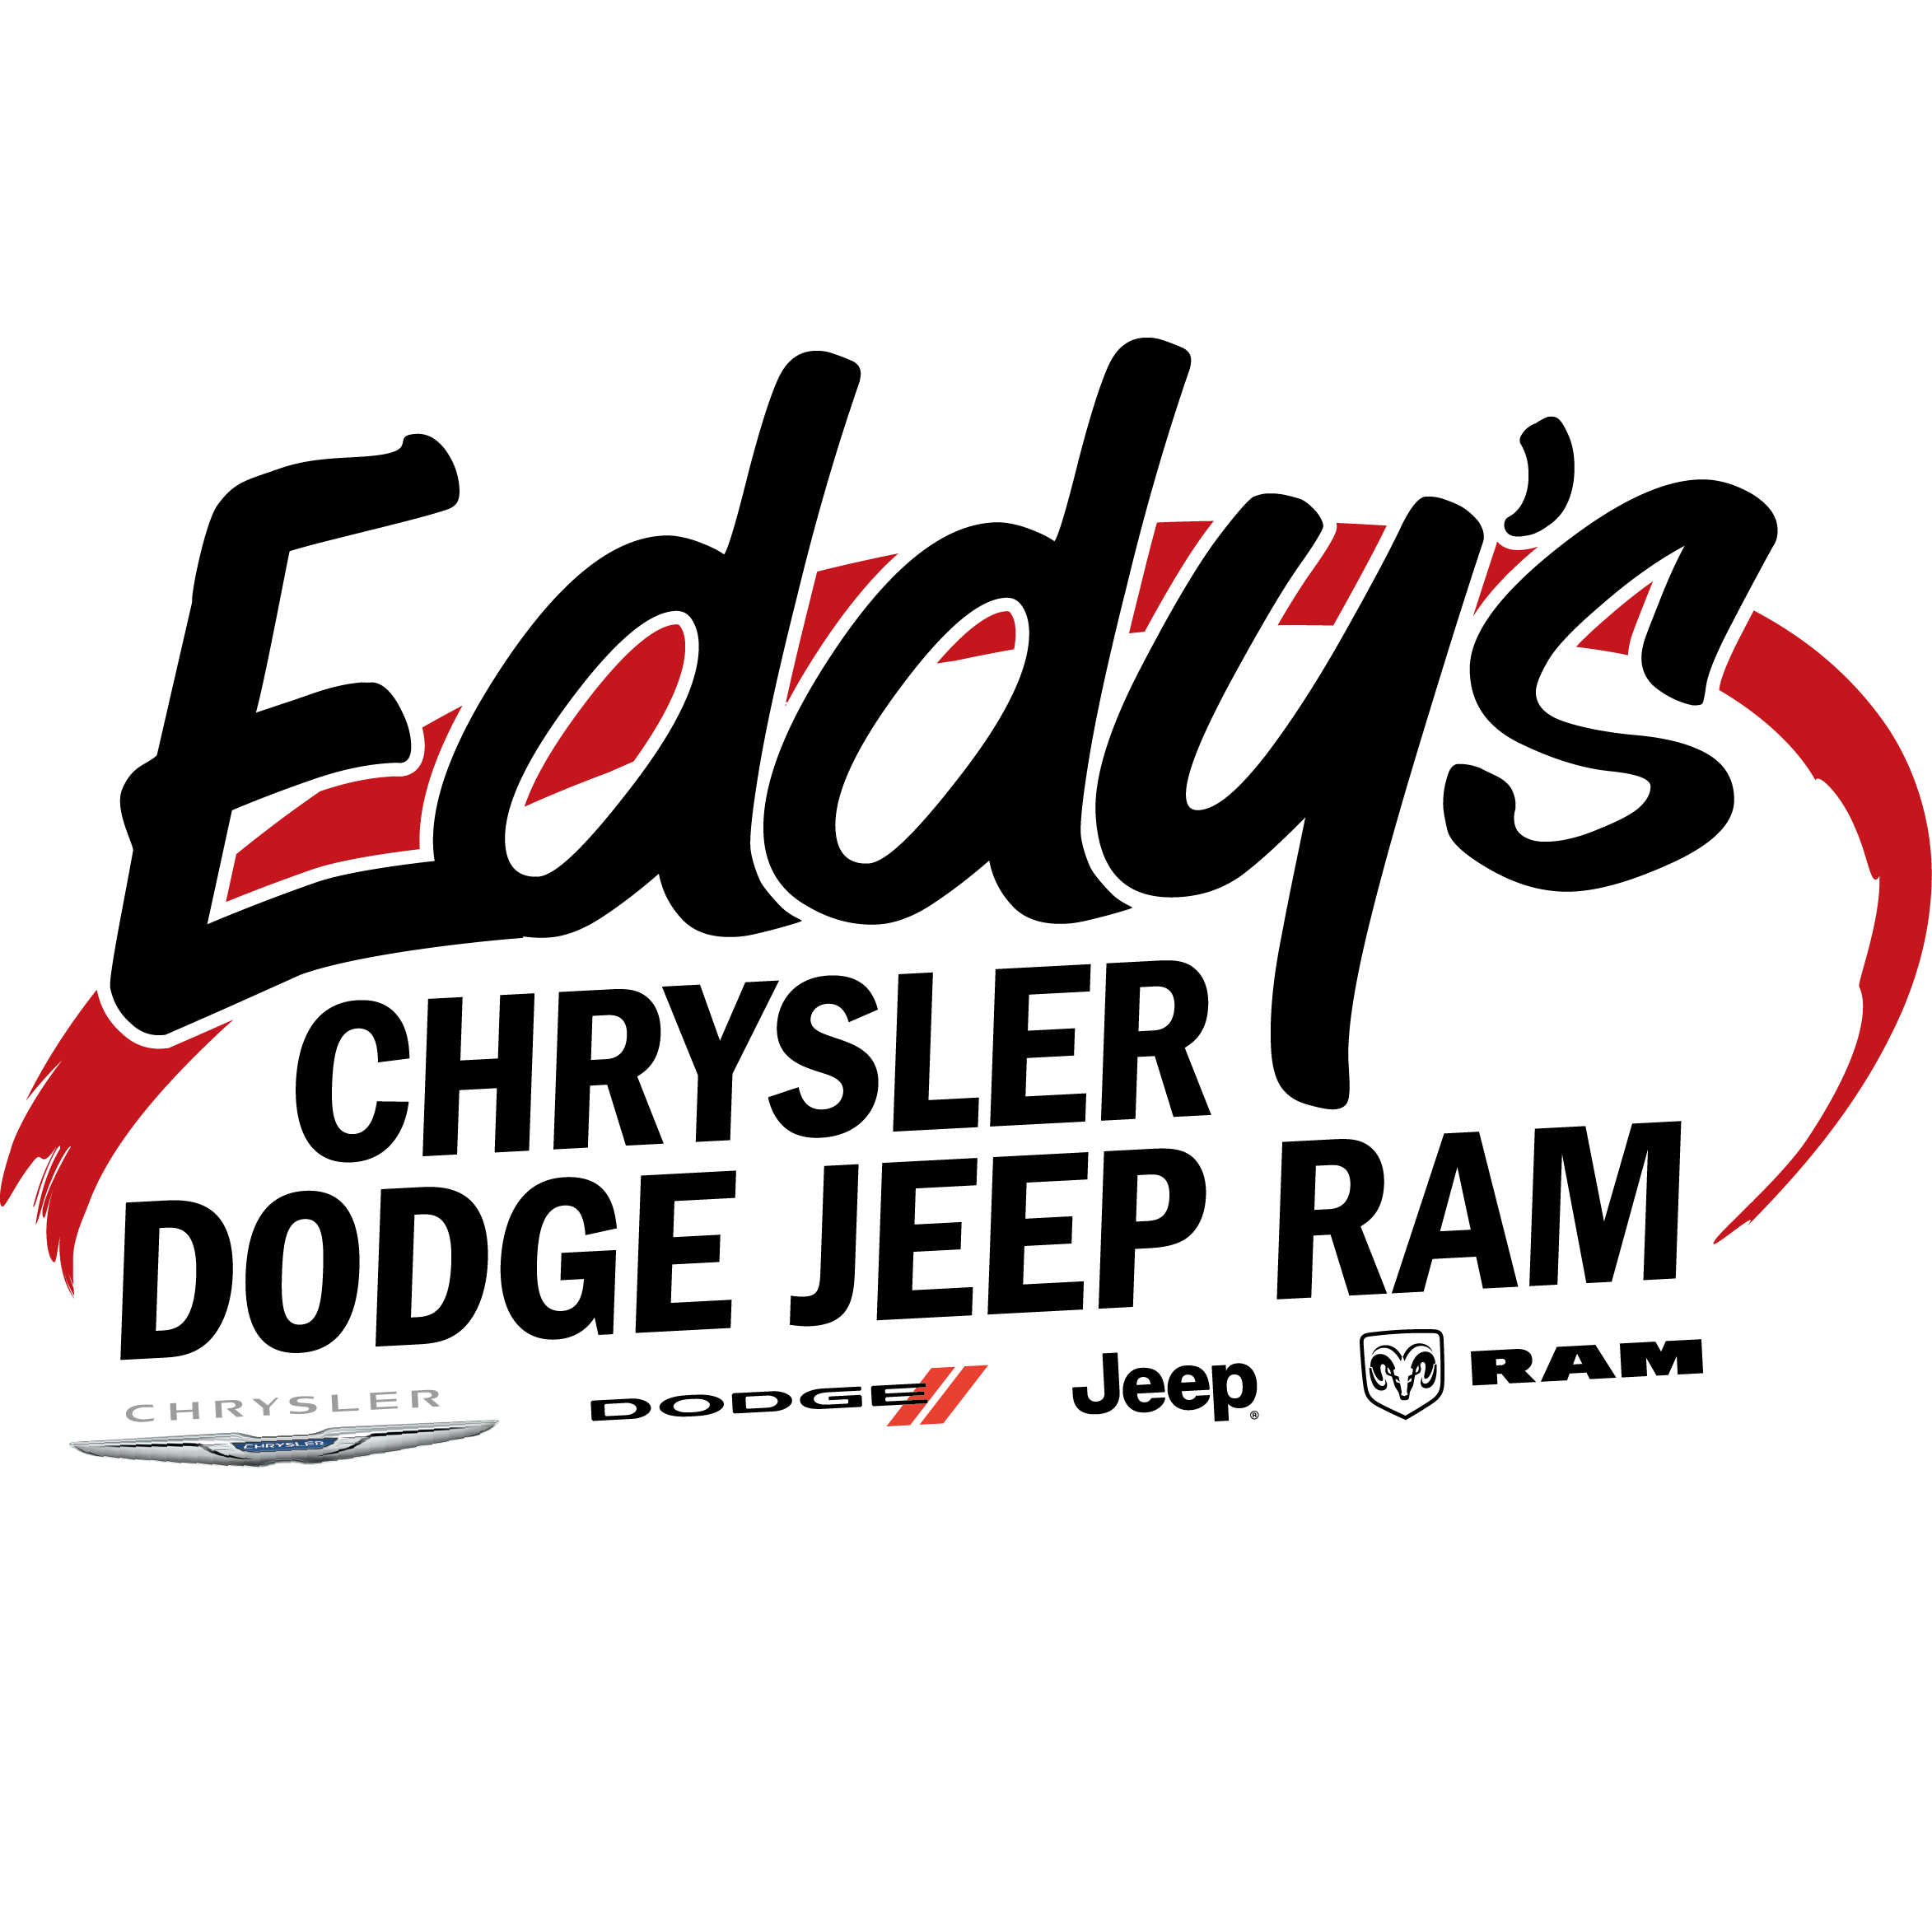 Eddy's Chrysler Dodge Jeep Ram, Wichita Kansas (KS